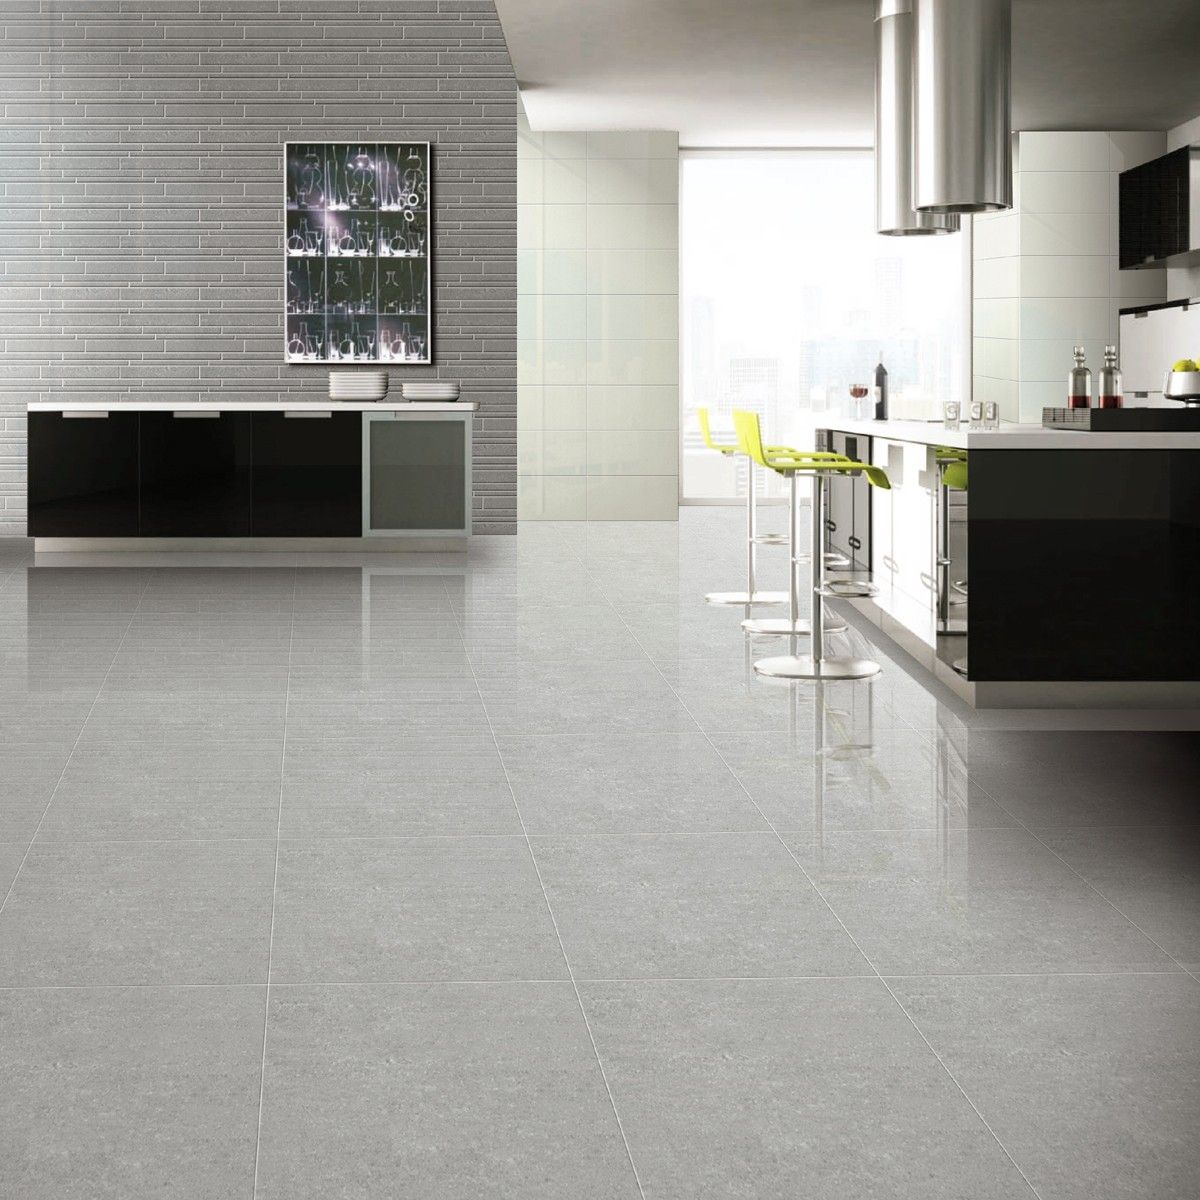 60x60 Super Polished Grey Porcelain Floor Tiles Tile within sizing 1200 X 1200